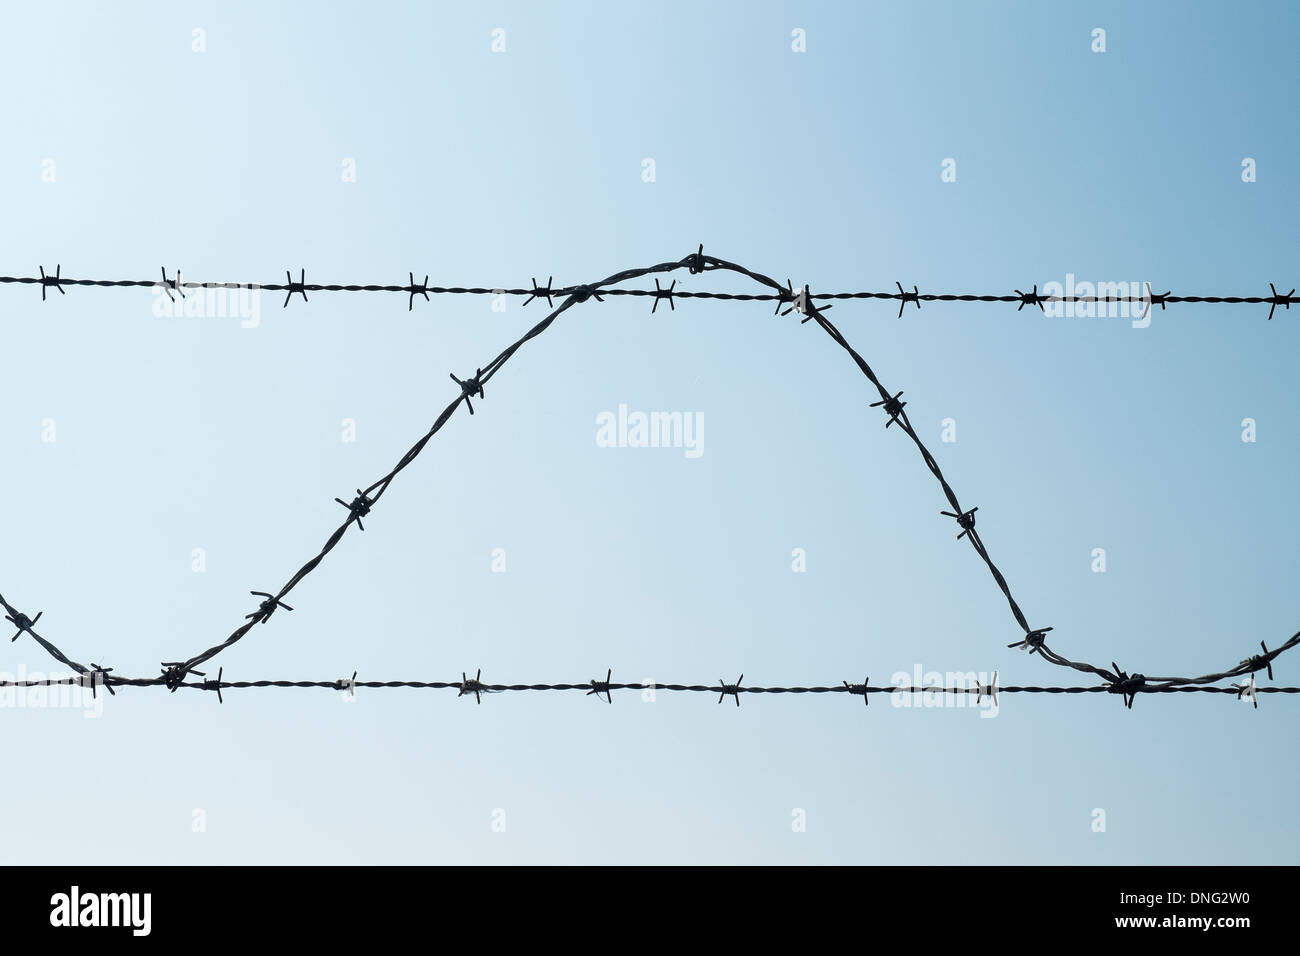 Barbed Wire Stock Photos & Barbed Wire Stock Images - Alamy